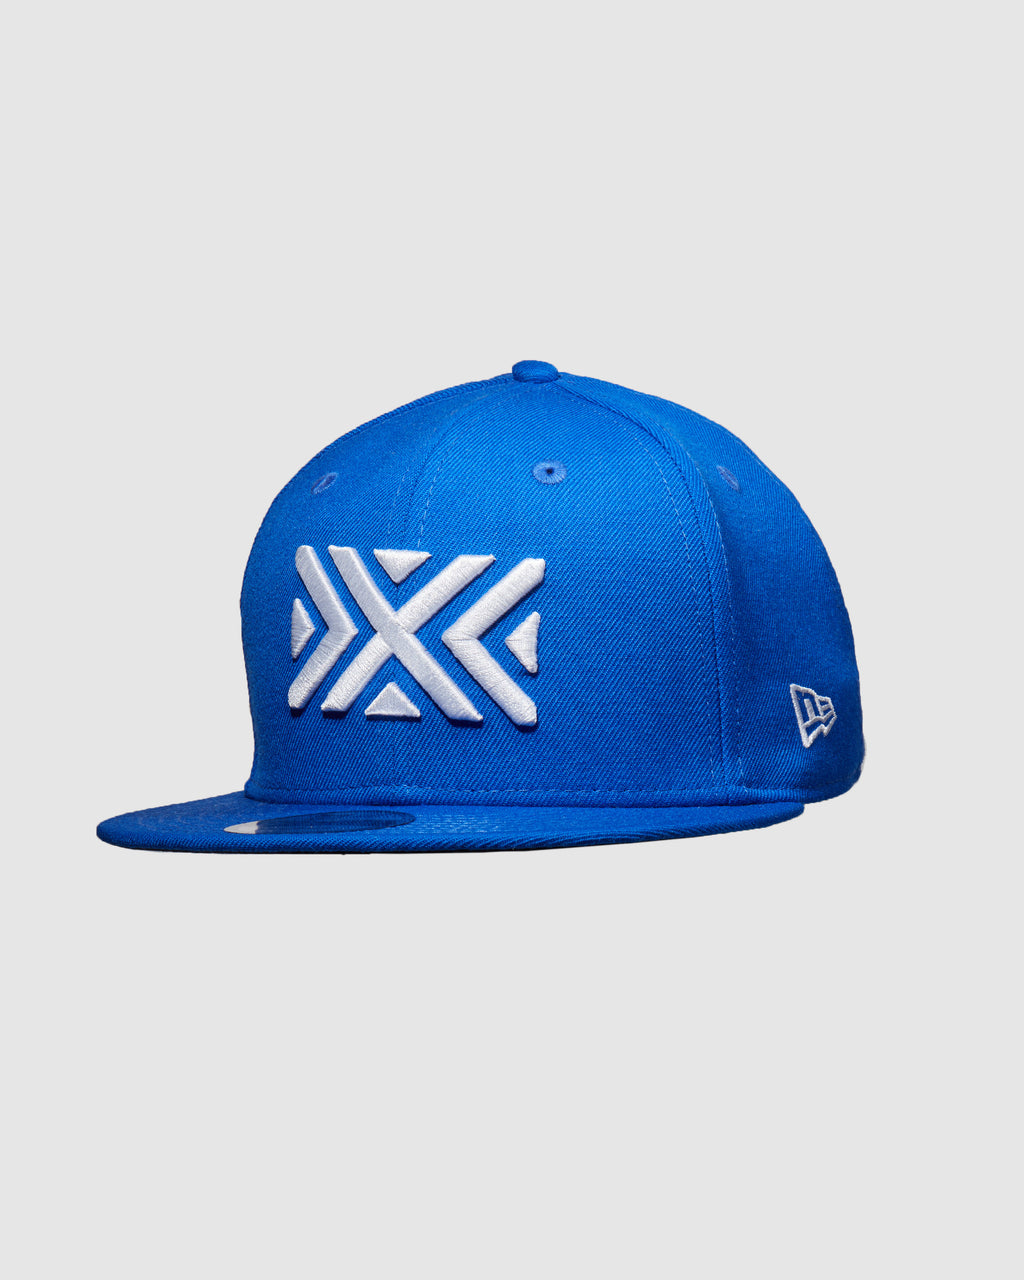 UNDEFEATED NYXL Team Hat BA (OSFM)